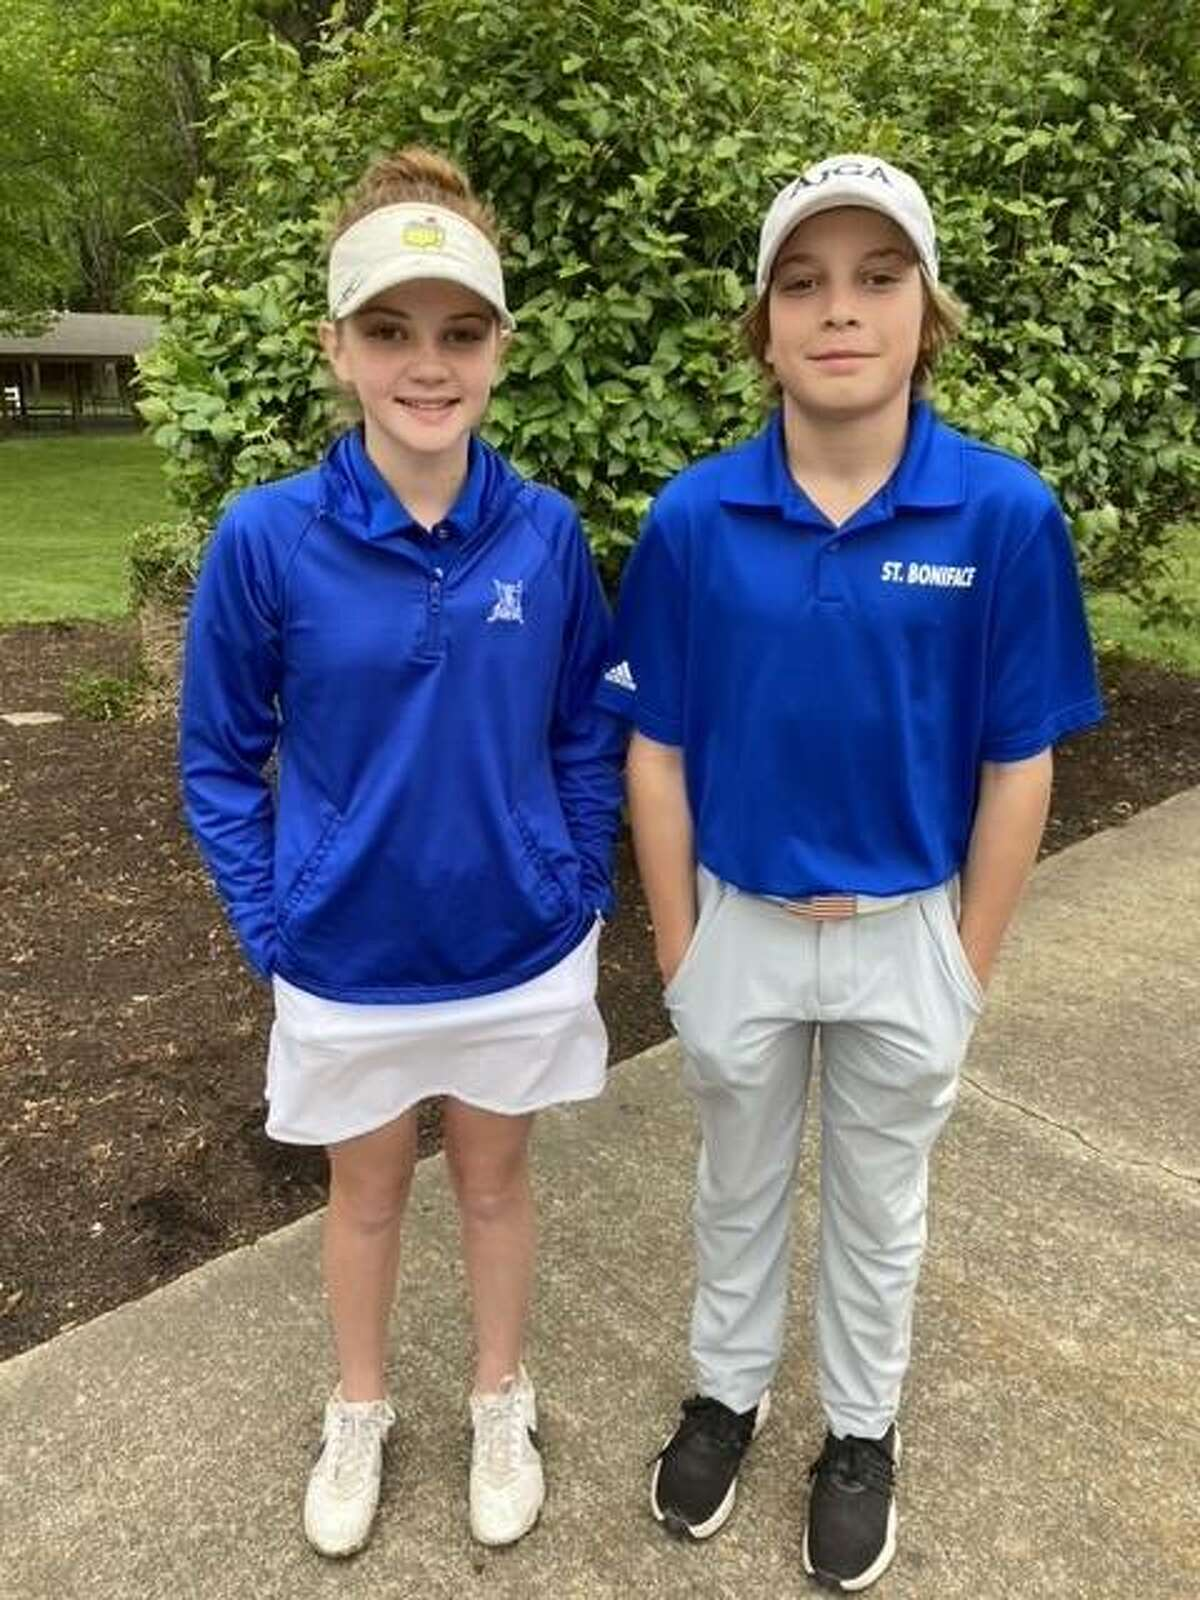 On a cool, windy day at Rend Lake Golf Course, 52 boys and 45 girls competed in the SIJHSAA State Golf Tournament. Representing St. Boniface Catholic School were a pair of seventh-graders, Remy Tyrell and Sarah Hyten. Remy posted a 93 on a very difficult, rained-soak golf course. Sarah posted a personal best score of 80 while hitting 12 of 14 fairways and 15 of 18 greens. This put her in a tie for second place. She lost the scorecard playoff to finish third in the tournament. The St. Boniface Golf Team is coached by Steve Hyten.